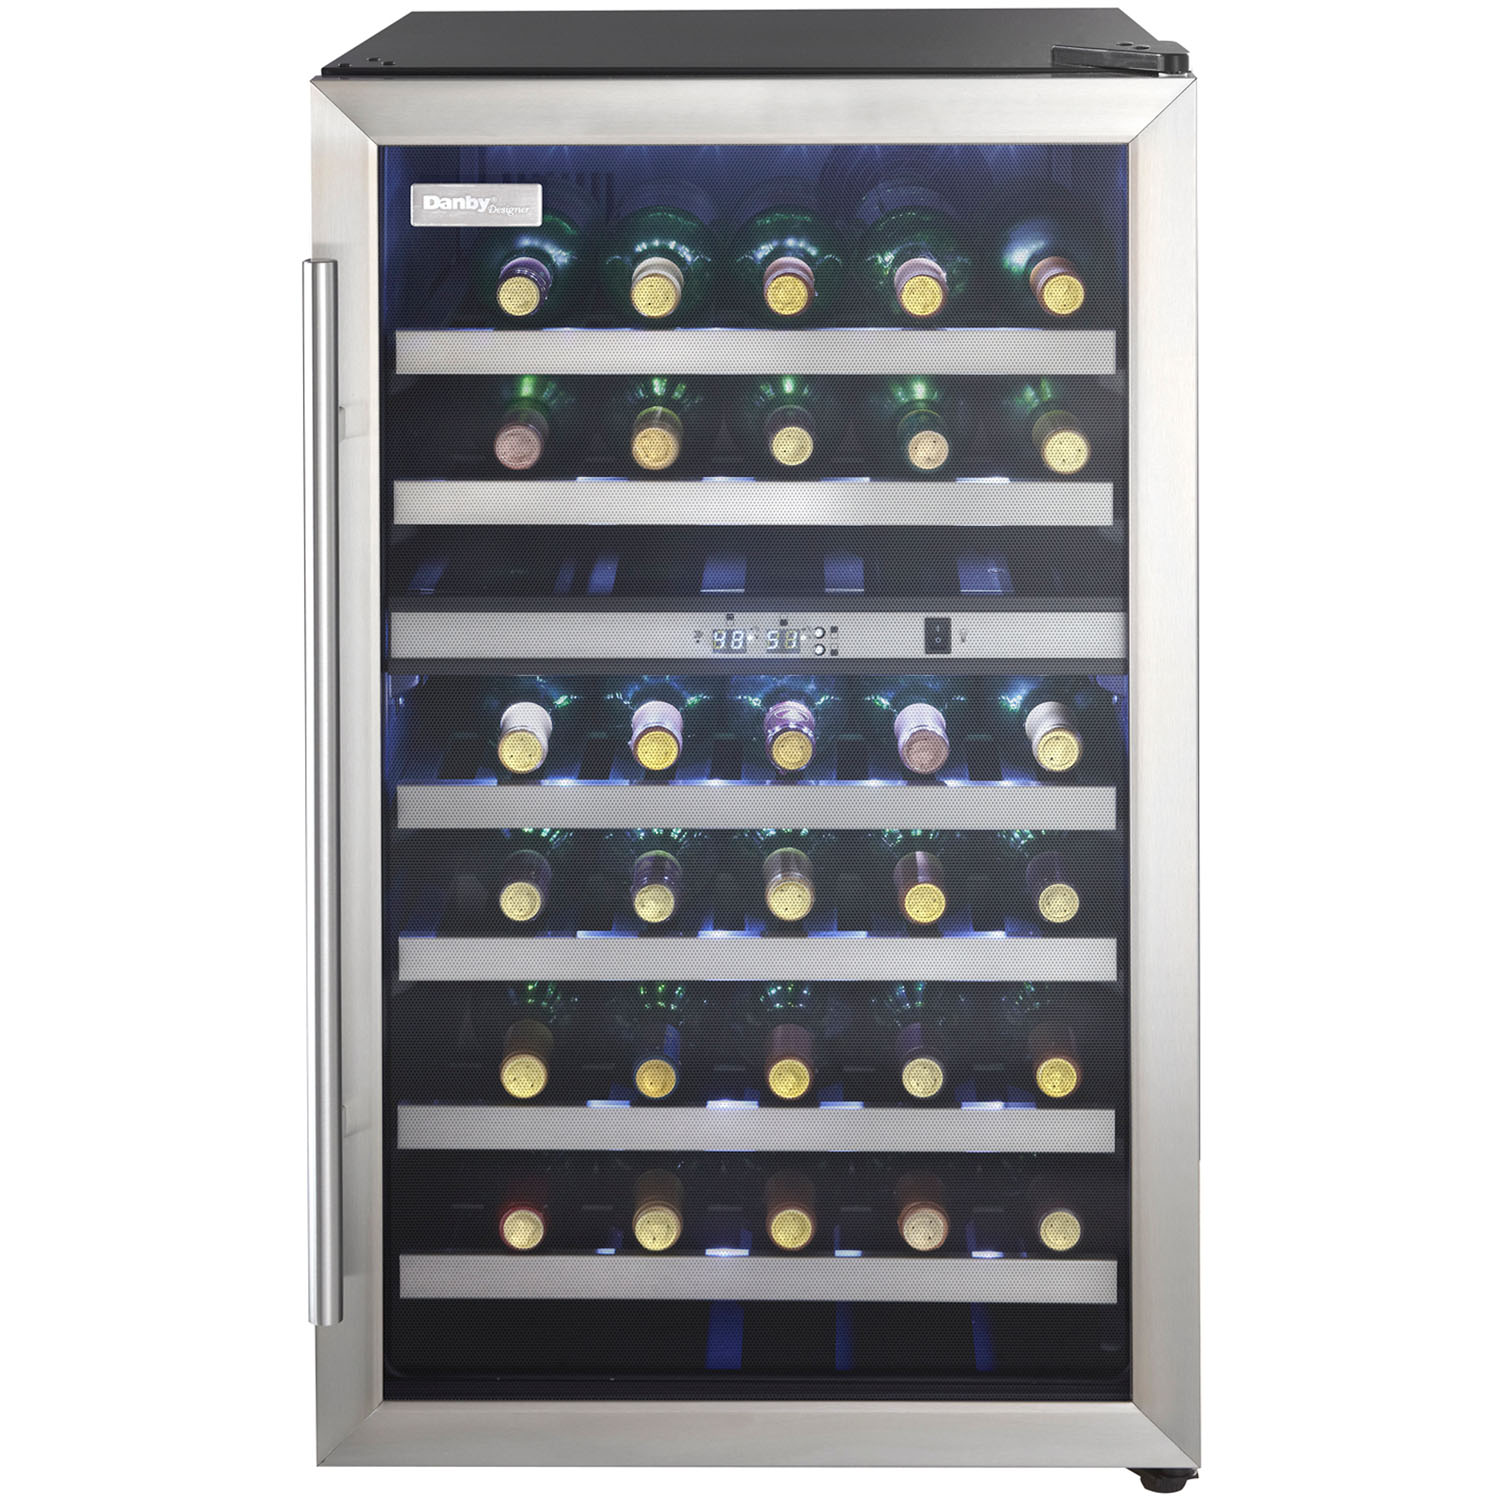 Danby Designer 38-Bottle Free-Standing Dual-Zone Wine Cooler - Black